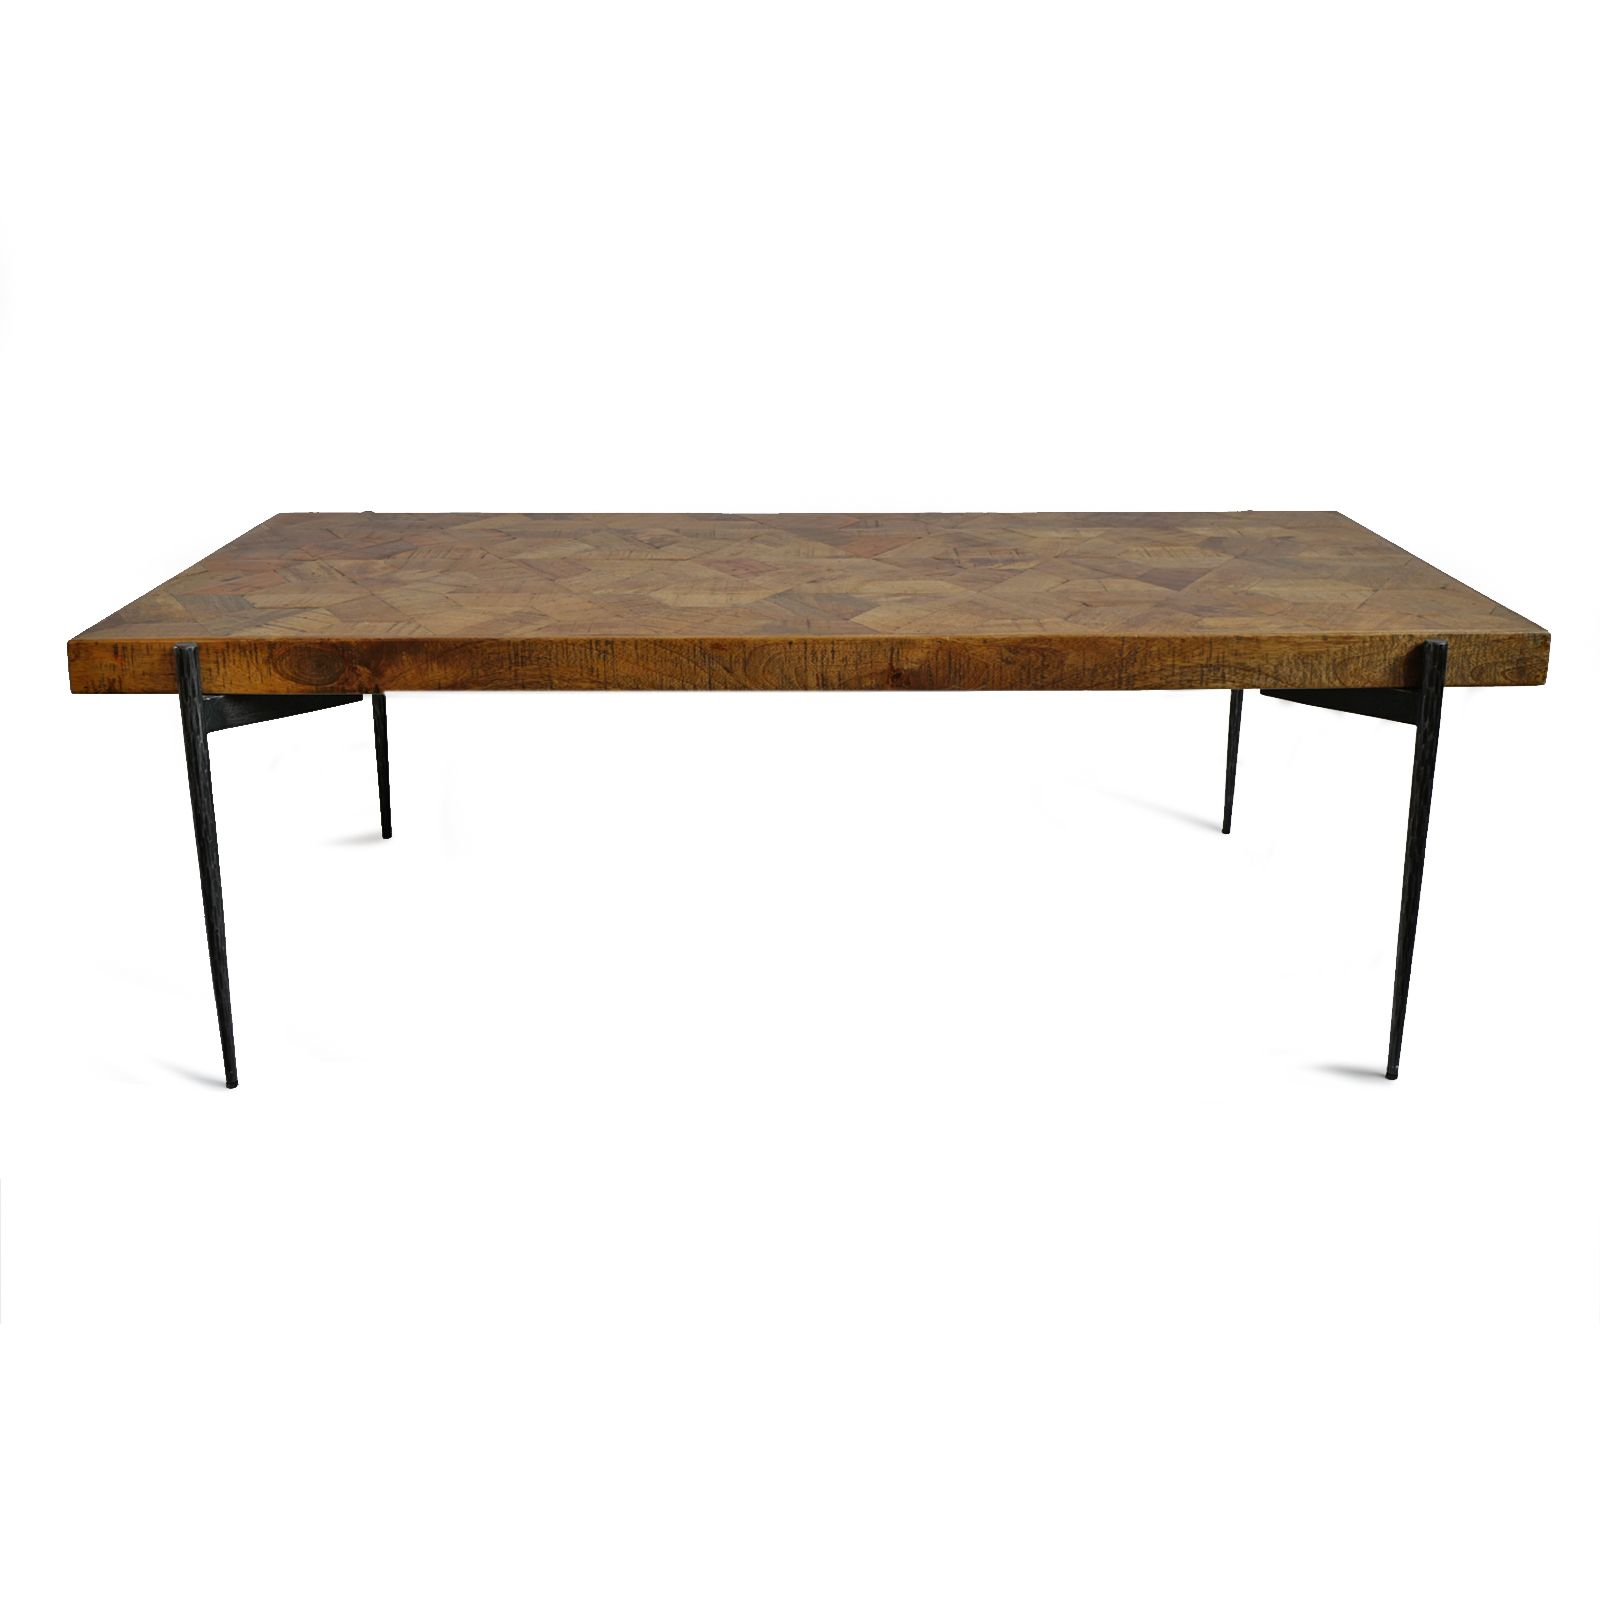 Modern Coffee Table With Narrow Black Iron Legs And Wood Table